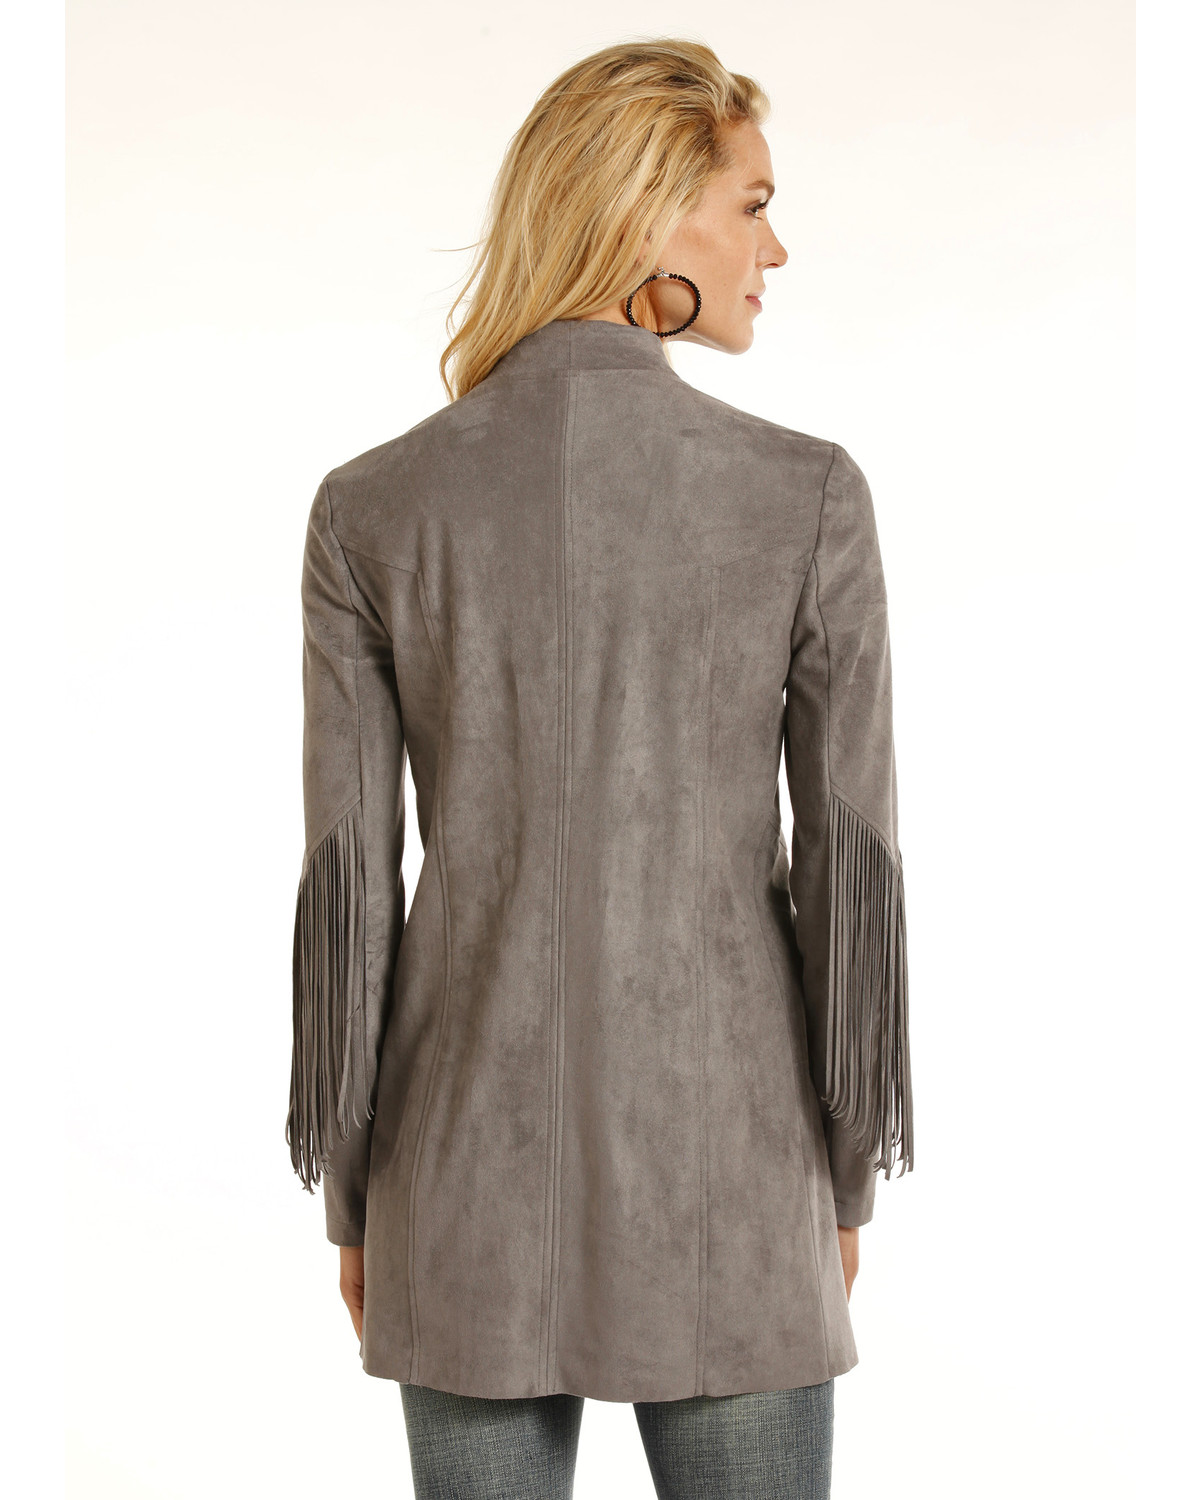 com mid up length product womens long lace s barn jackets women barns trench sleeve tidebuy coat